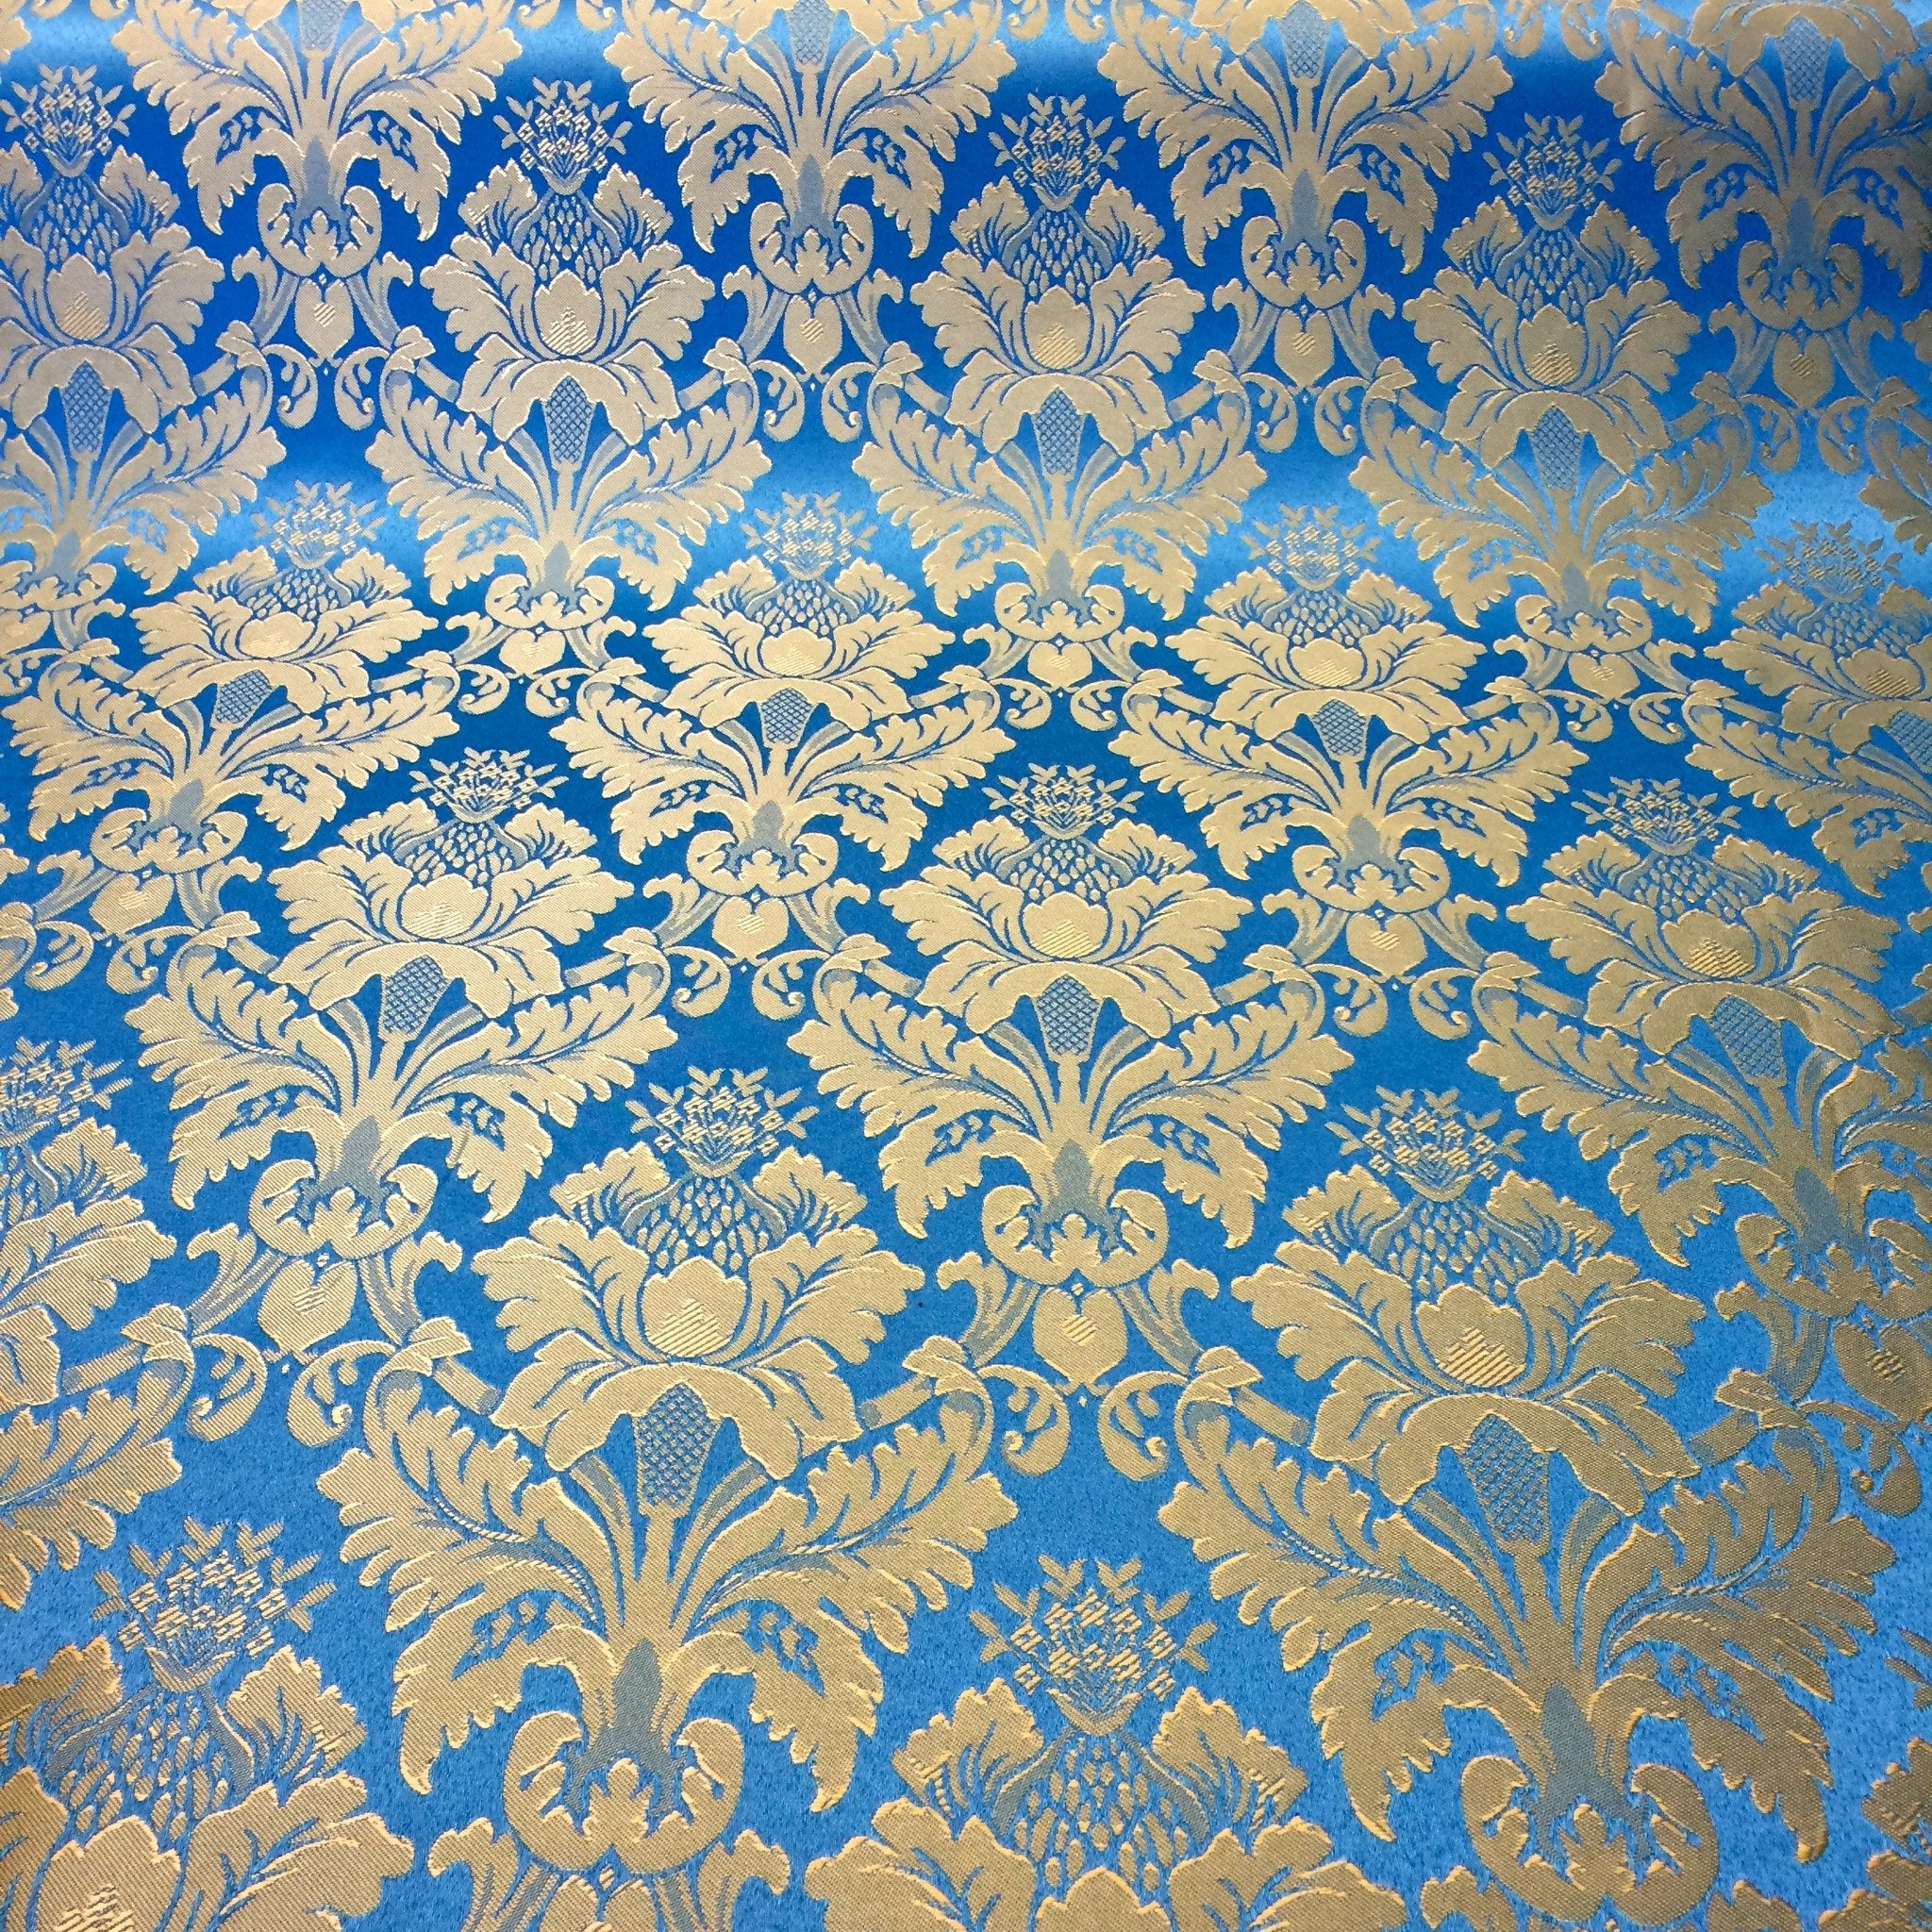 Turquoise Amp Gold Jacquard Fabric 120 Quot Wide For Curtain